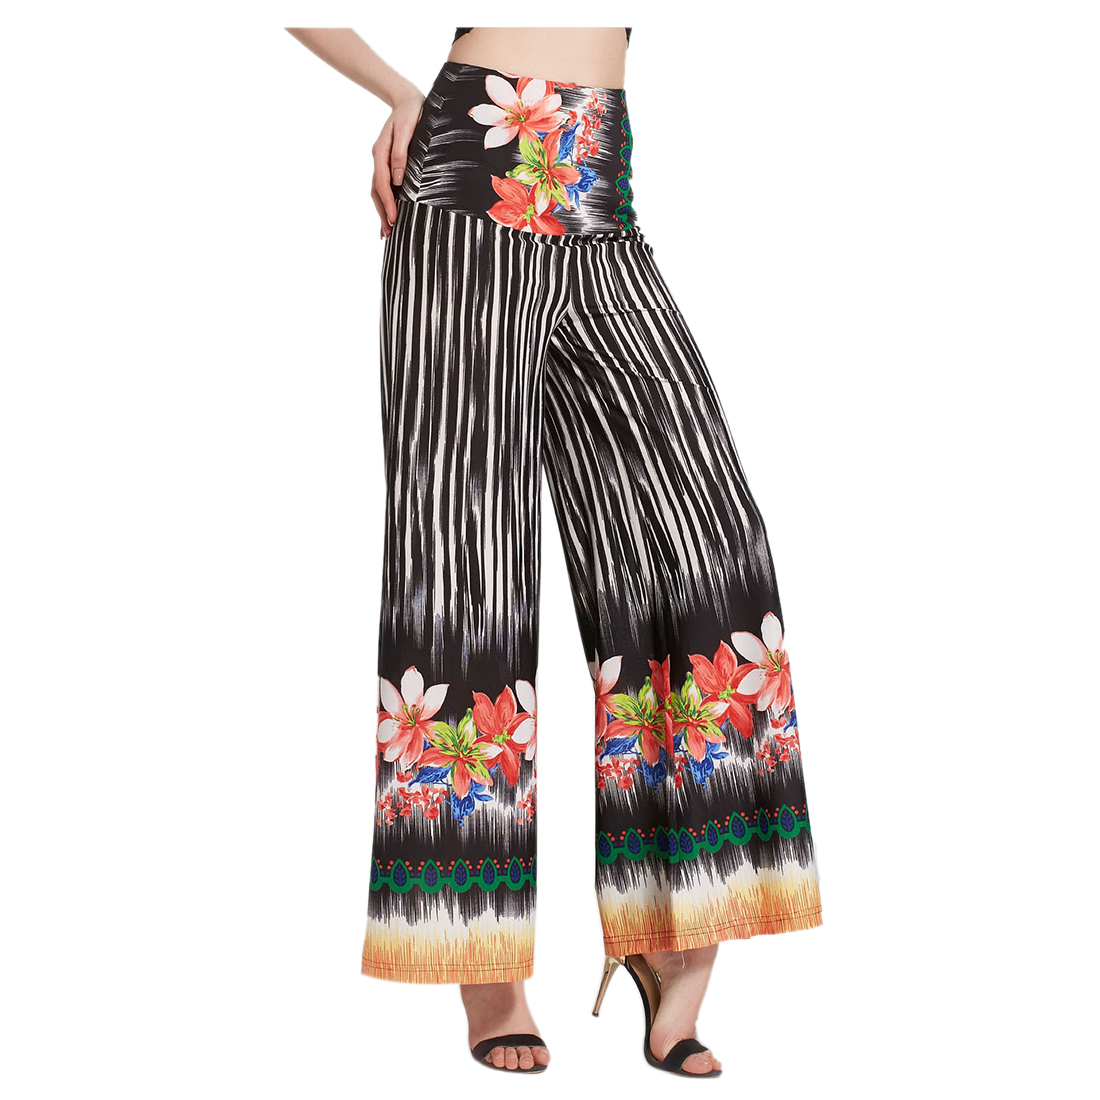 New Women High Waist Loose Pants Palazzo Wide Leg Dance Pants Floral Printing Tribal Pattern Pants Bell Bottom Trousers(B